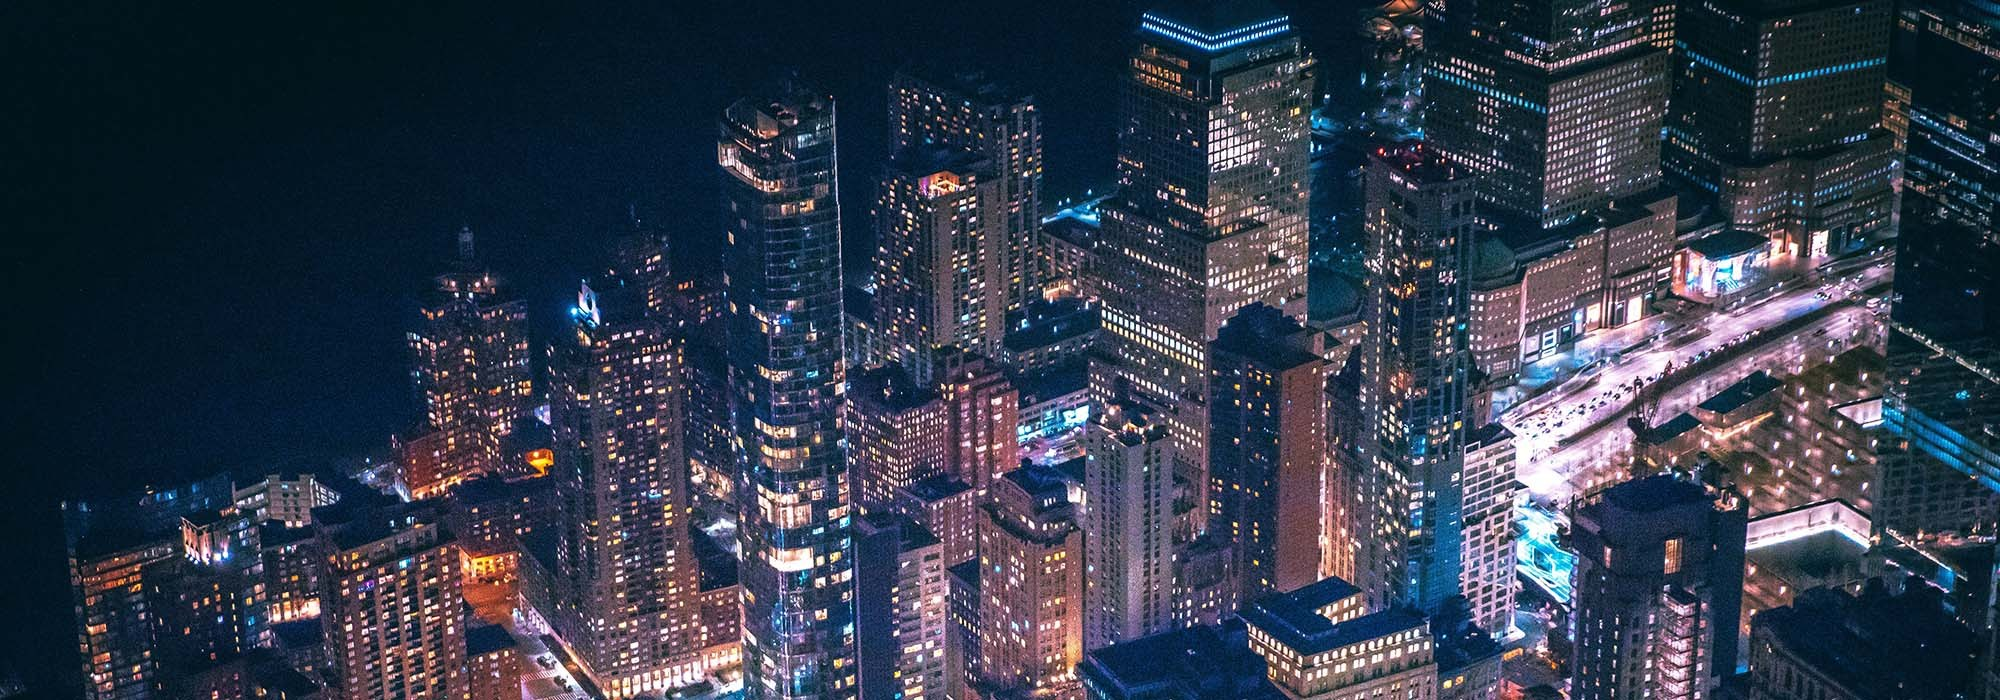 New York City Skyline at night with headlights & buildings lit up